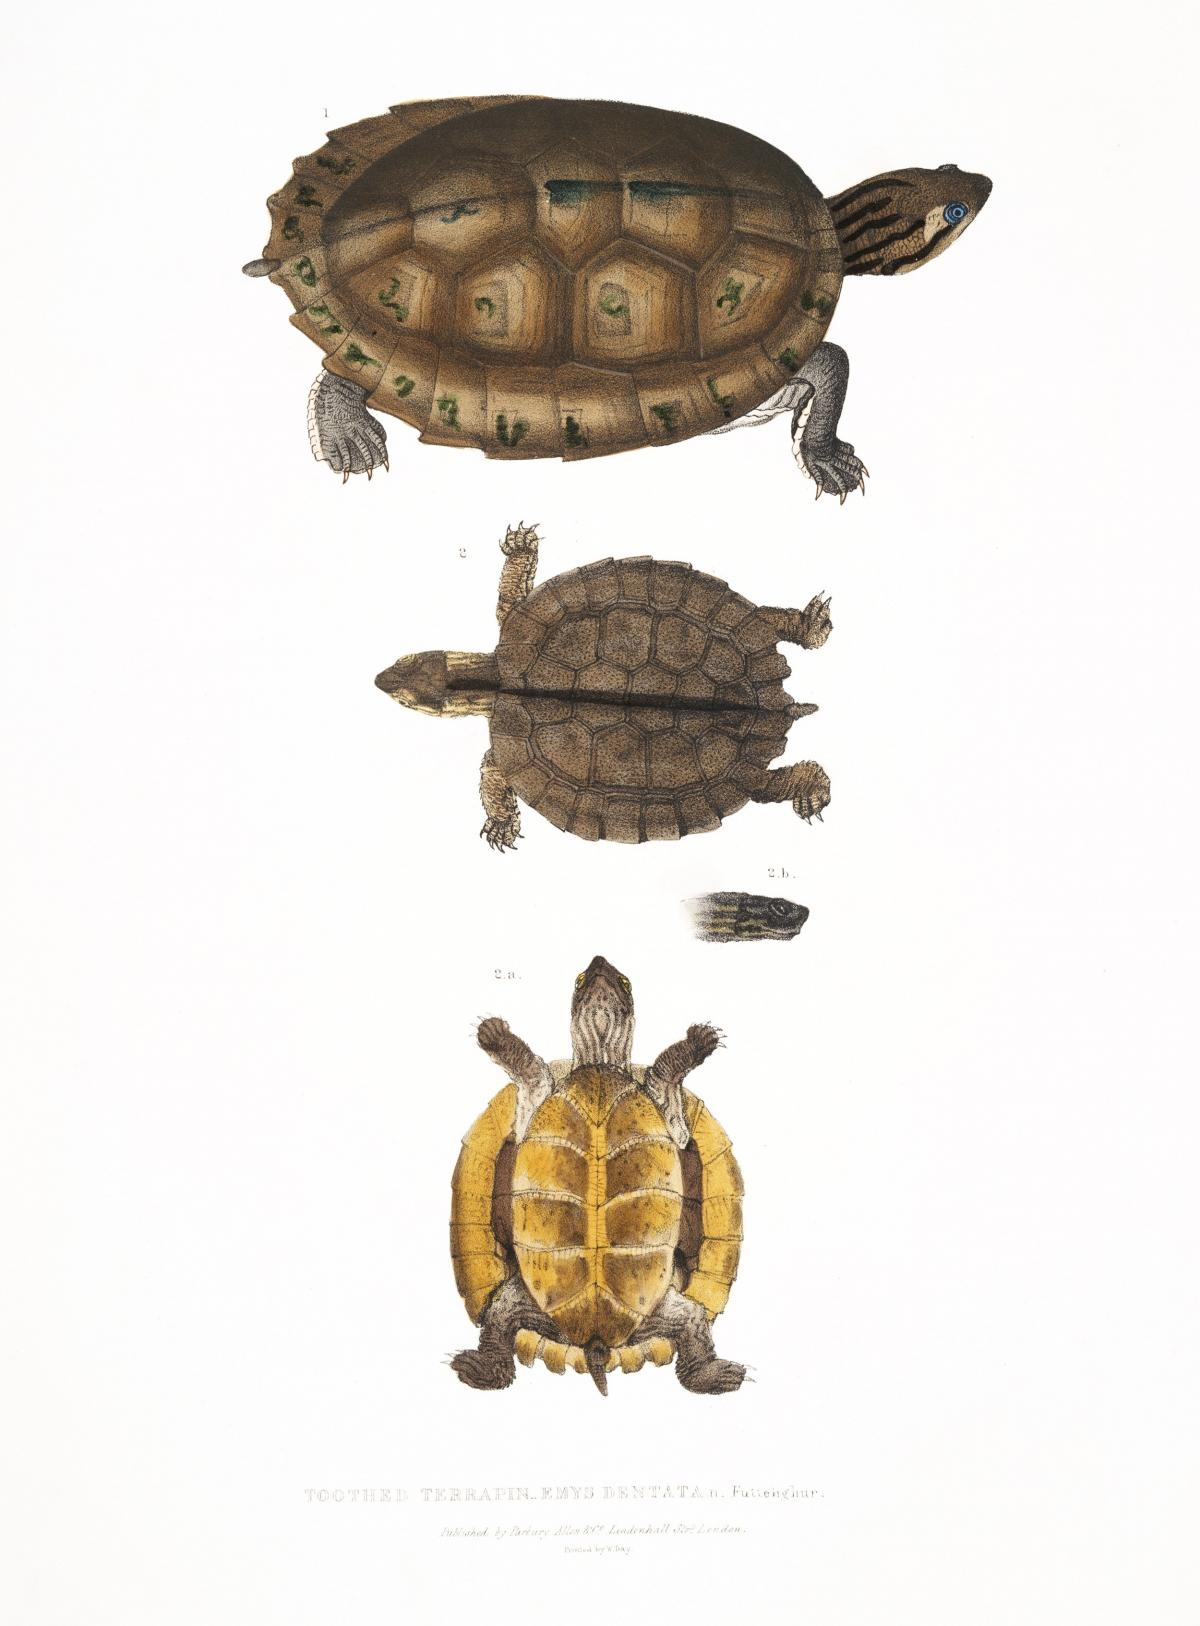 Toothed Terrapin (Emys dentata) from Illustrations of Indian zoology (1830-1834) by John Edward Gray (1800-1875). Original from The New York Public Library.